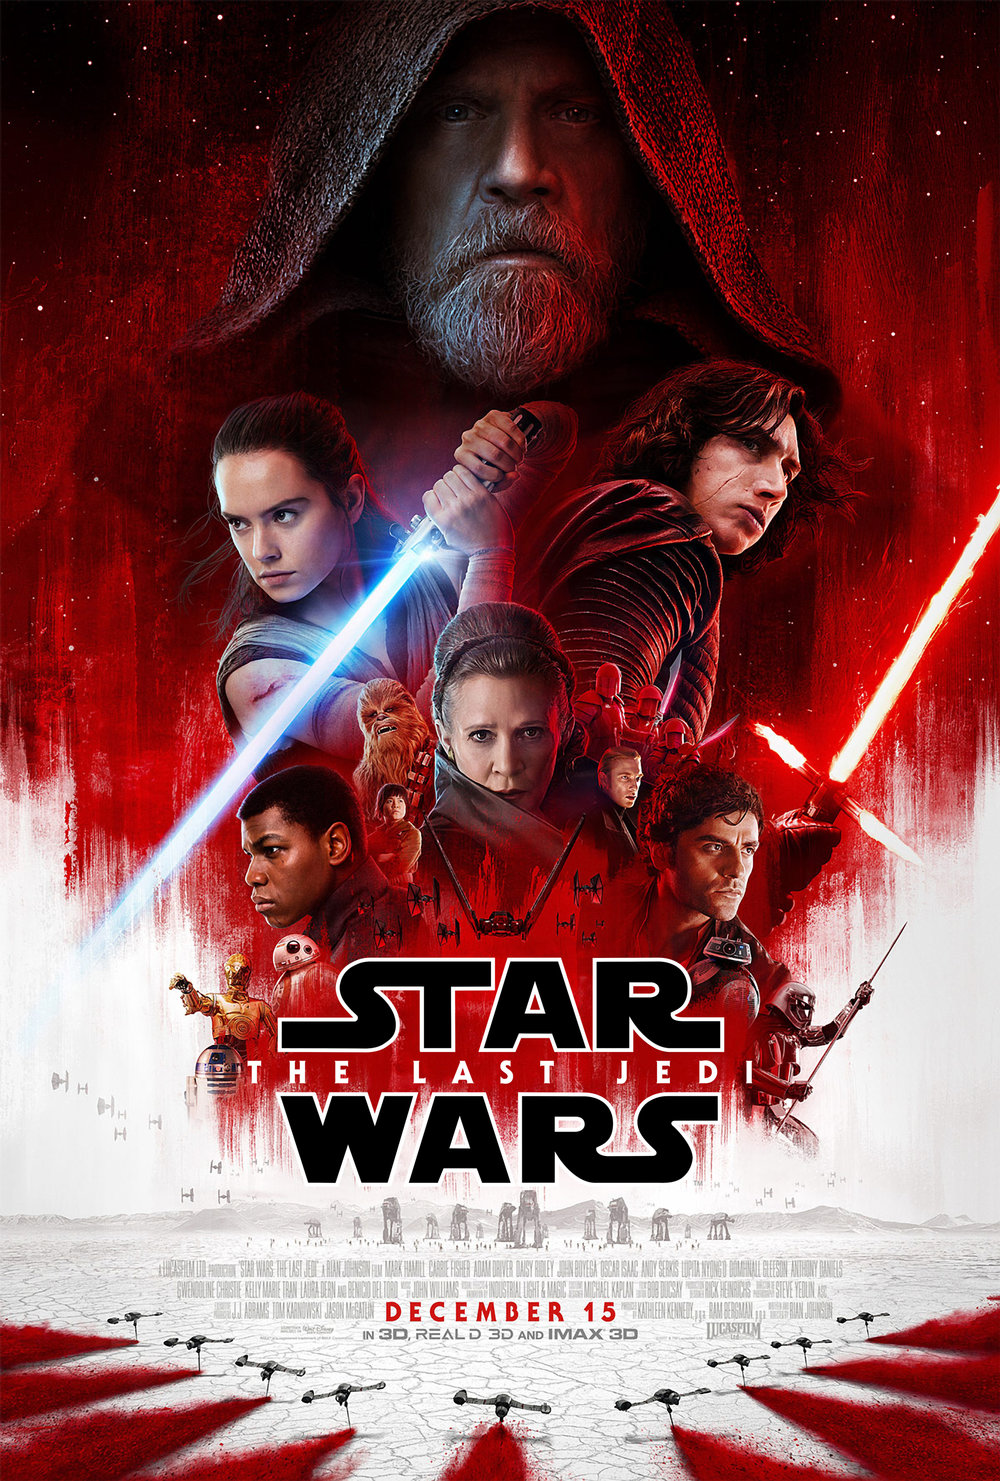 star-wars-the-last-jedi-official-theatrical-poster-large-hi-res-hd.jpg